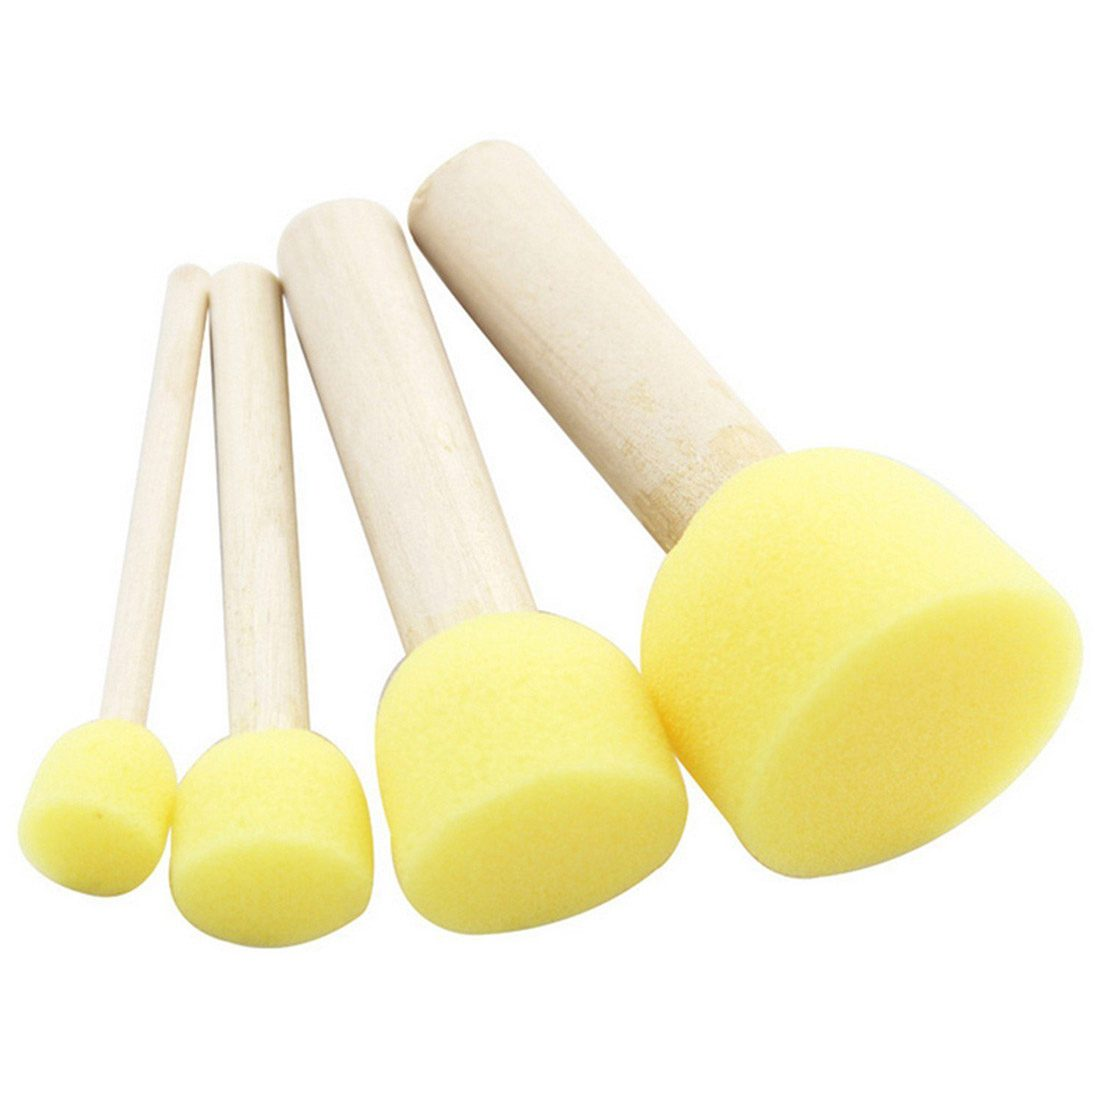 5Pcs-4pcs/Set Yellow Sponge Paint Brush Seal Sponge Brush Wooden Handle Childrens Painti ...